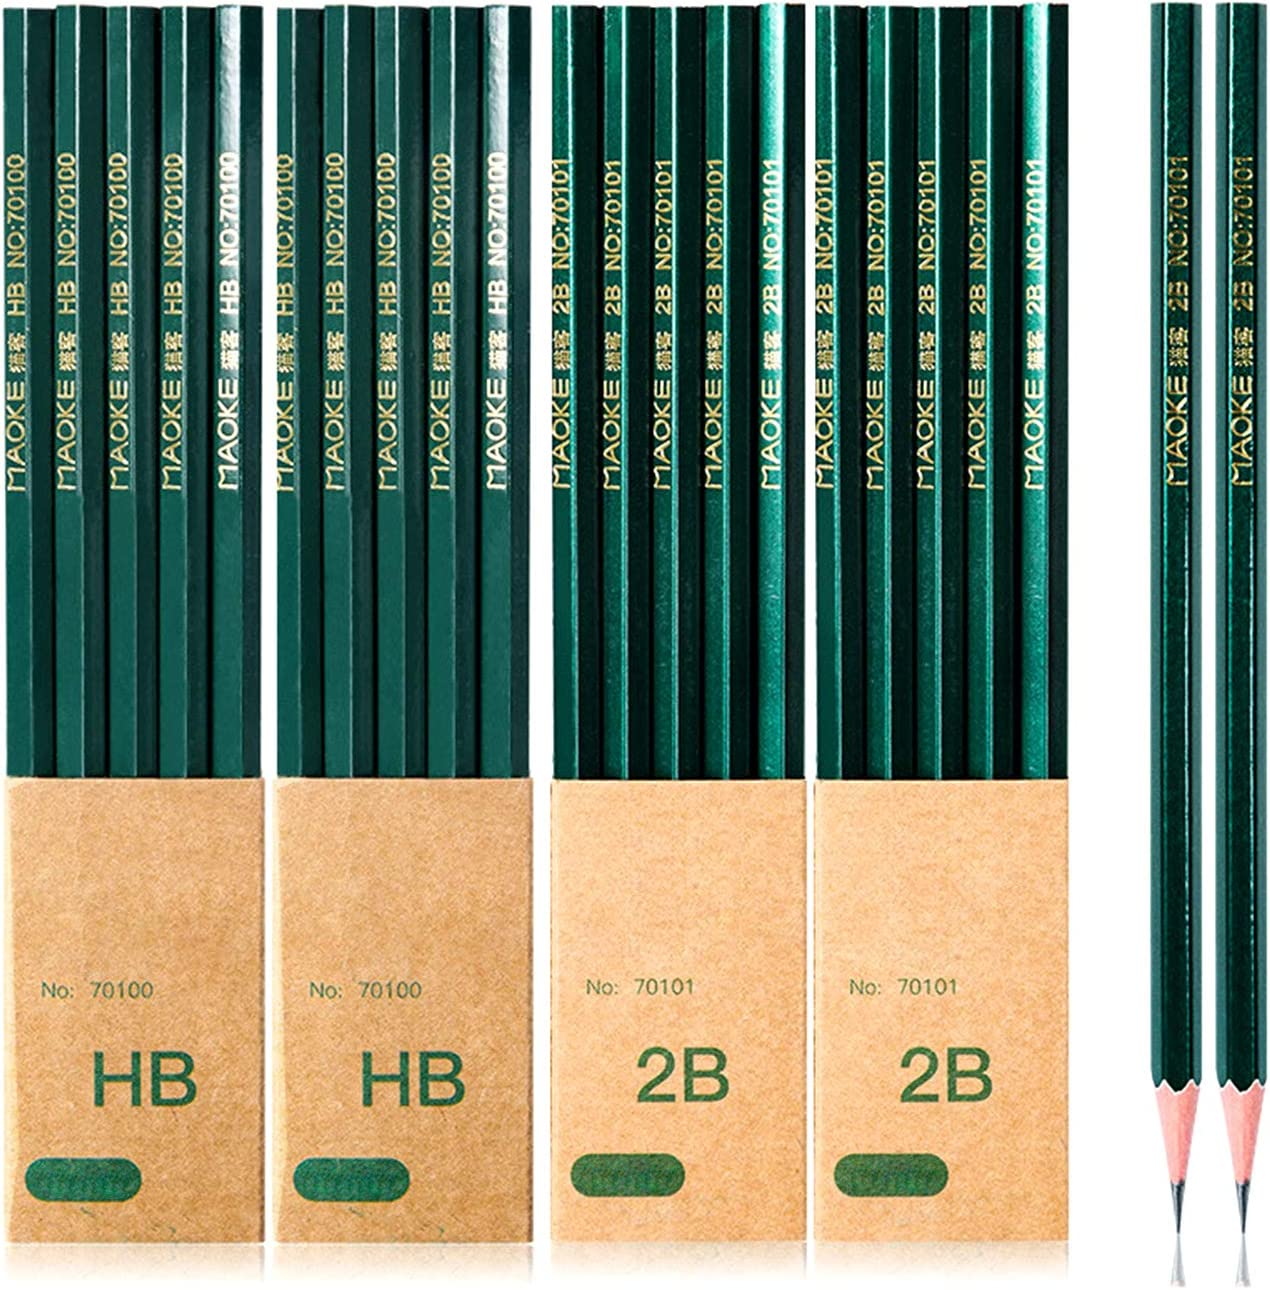 LOANPE 20-Count Wooden Lead Pencils, HB 2B Wood Cased Graphite Pencils, Hexagonal graphite drawing pencil Smooth write for Exams, School, Office, Drawing and Sketching